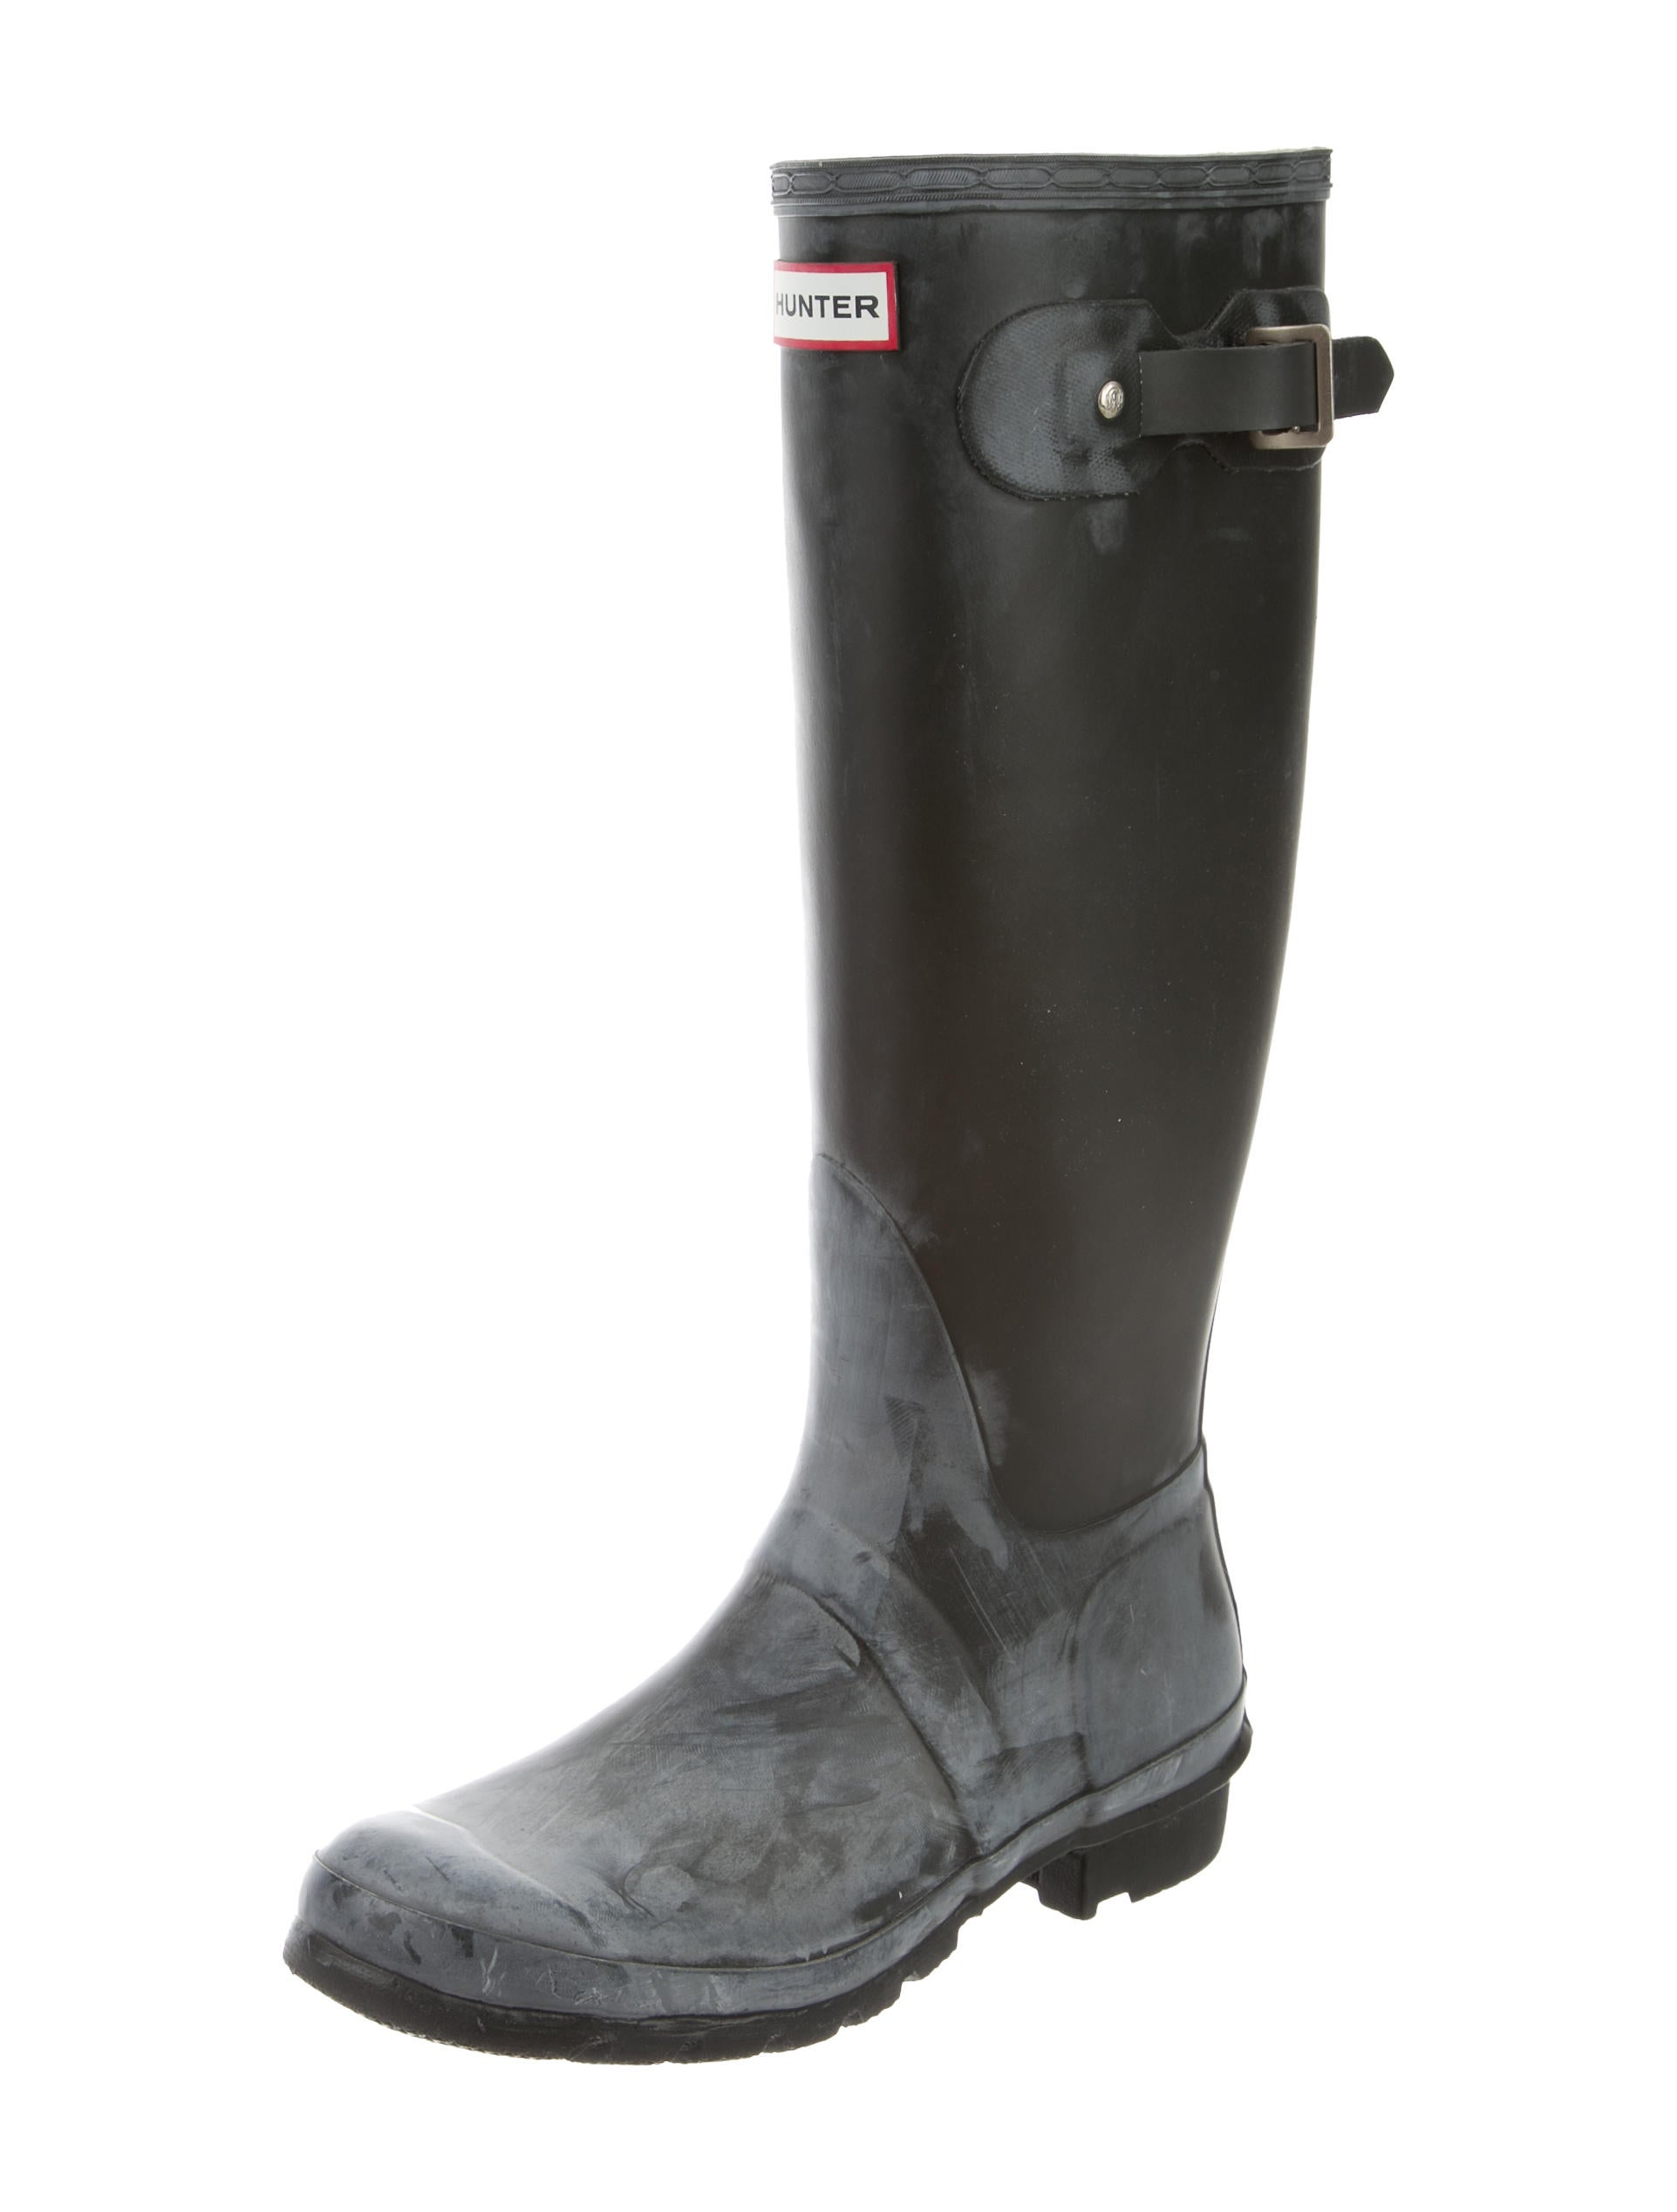 Hunter Rubber Rain Boots - Shoes - WH821120 | The RealReal